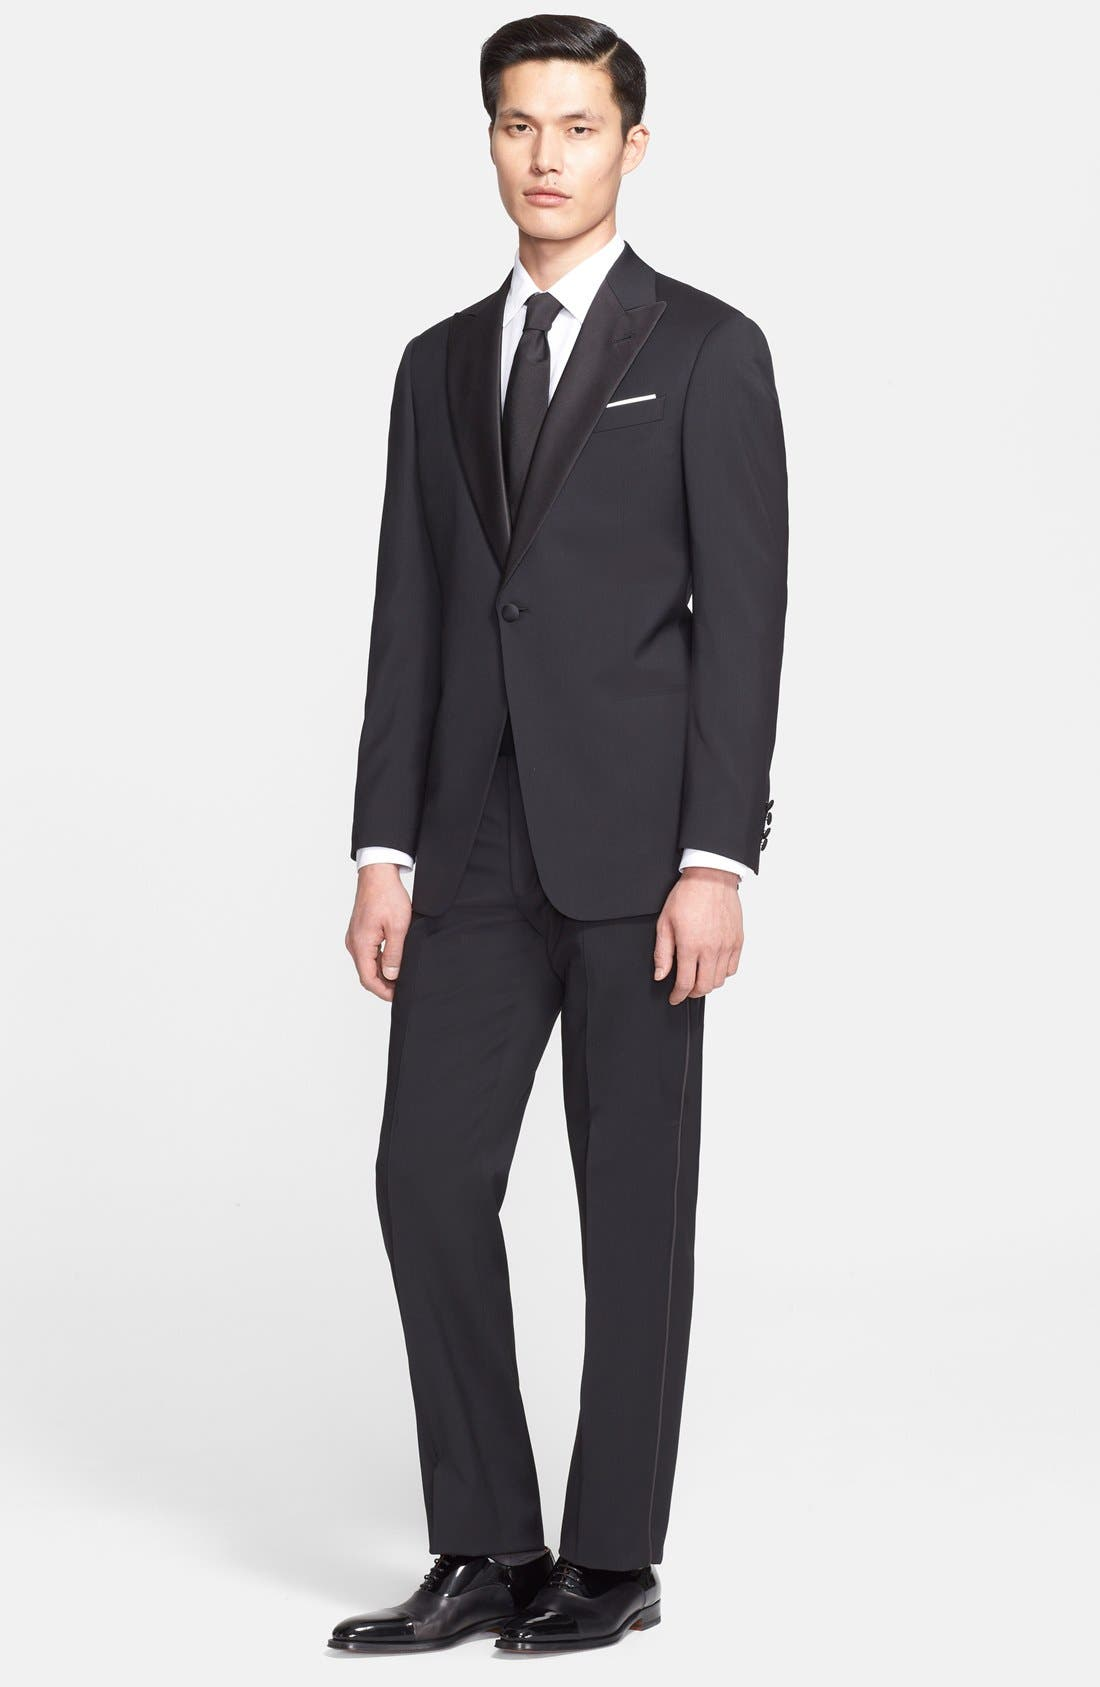 Main Image - Armani Collezioni 'Giorgio' Trim Fit Peak Lapel Wool Tuxedo (Free Next Day Shipping)